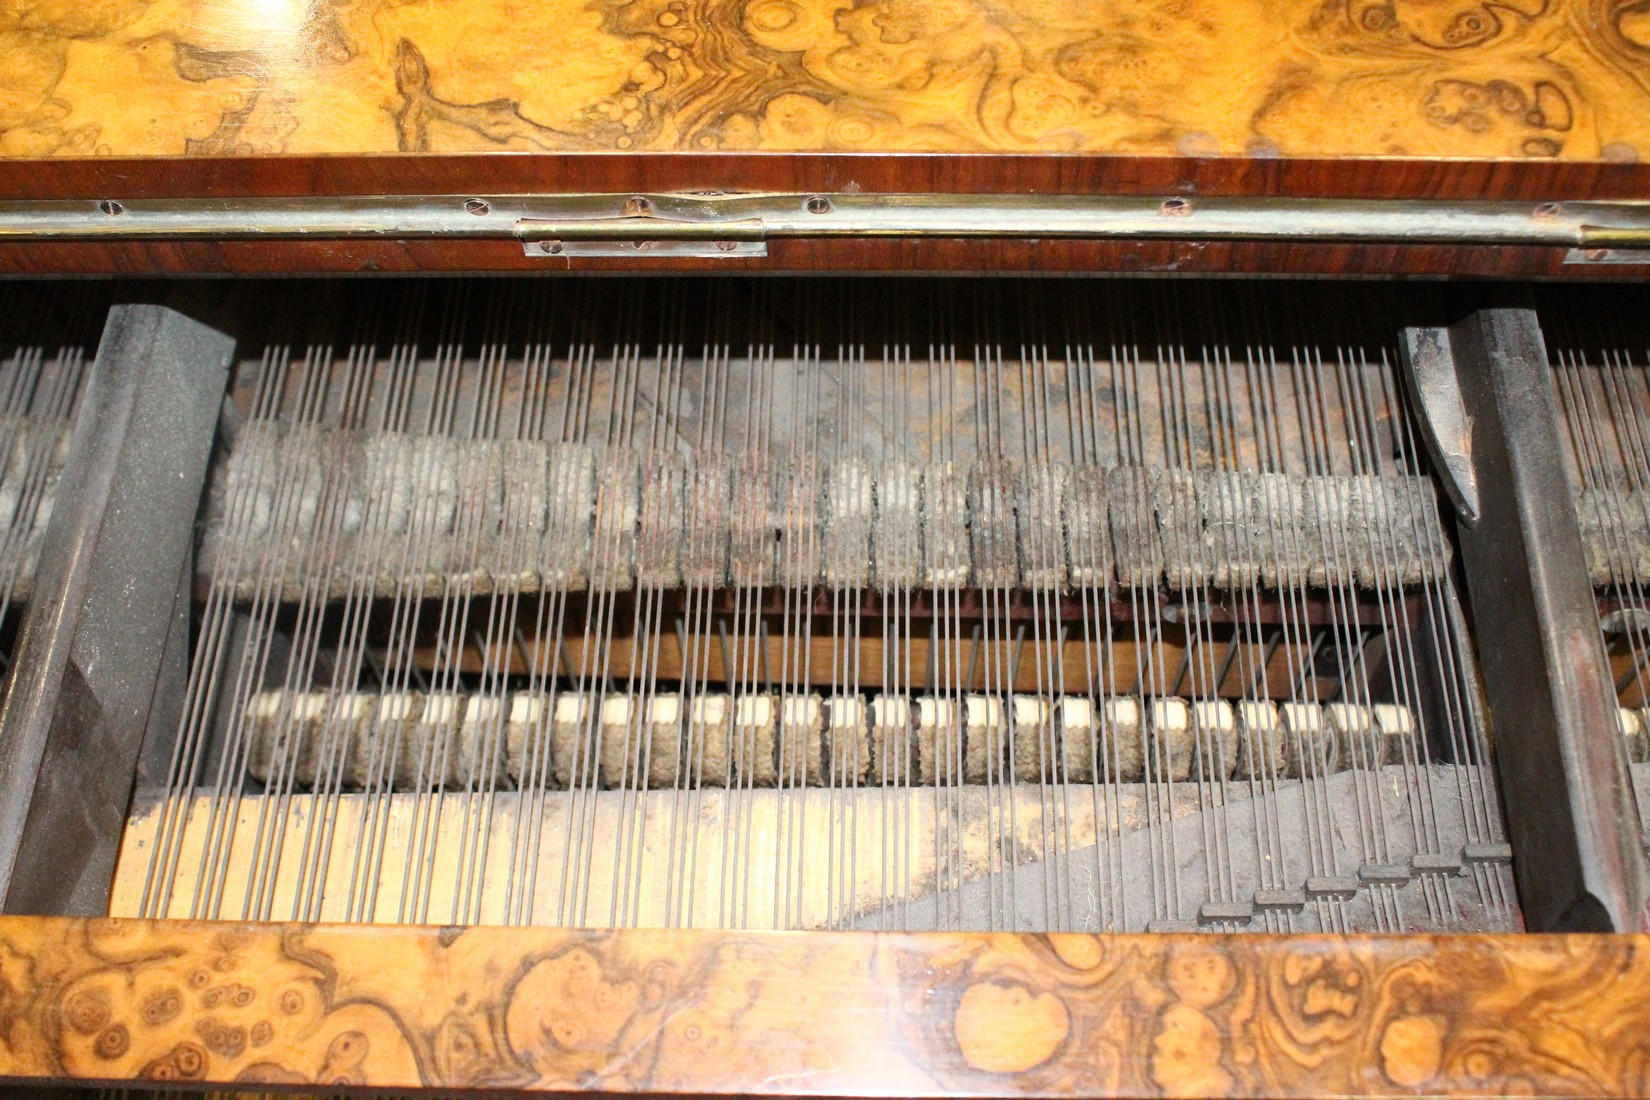 JOHN BROADWOOD & SONS, A good late 19th Centruy figured walnut Grand Piano, on turned and tapering - Image 19 of 19